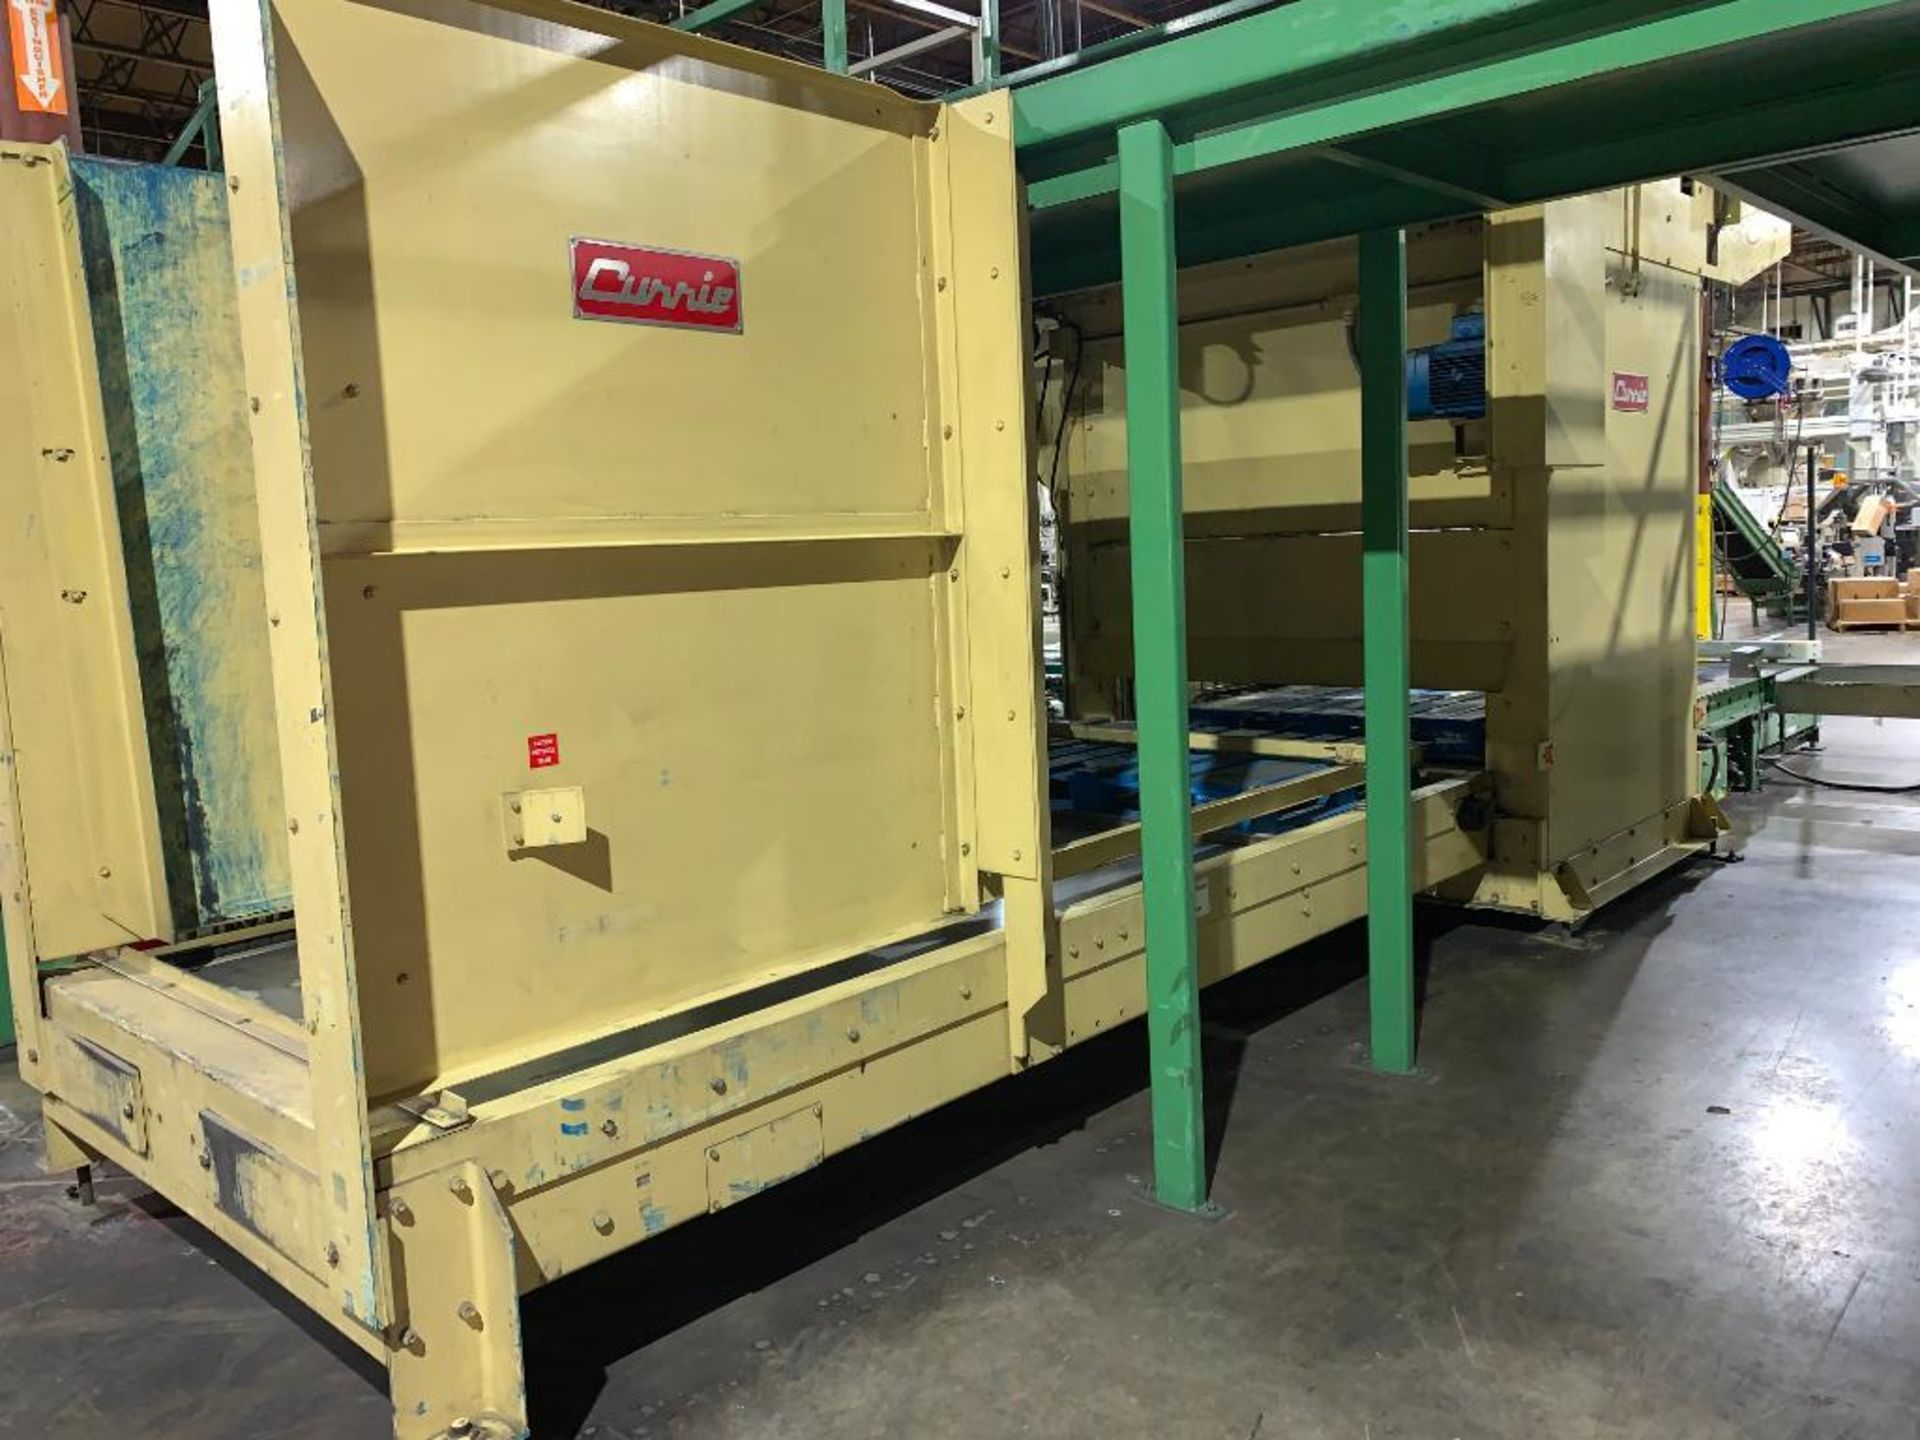 1992 Currie top to bottom palletizer, machine number LSP-5-1176 - Image 4 of 56